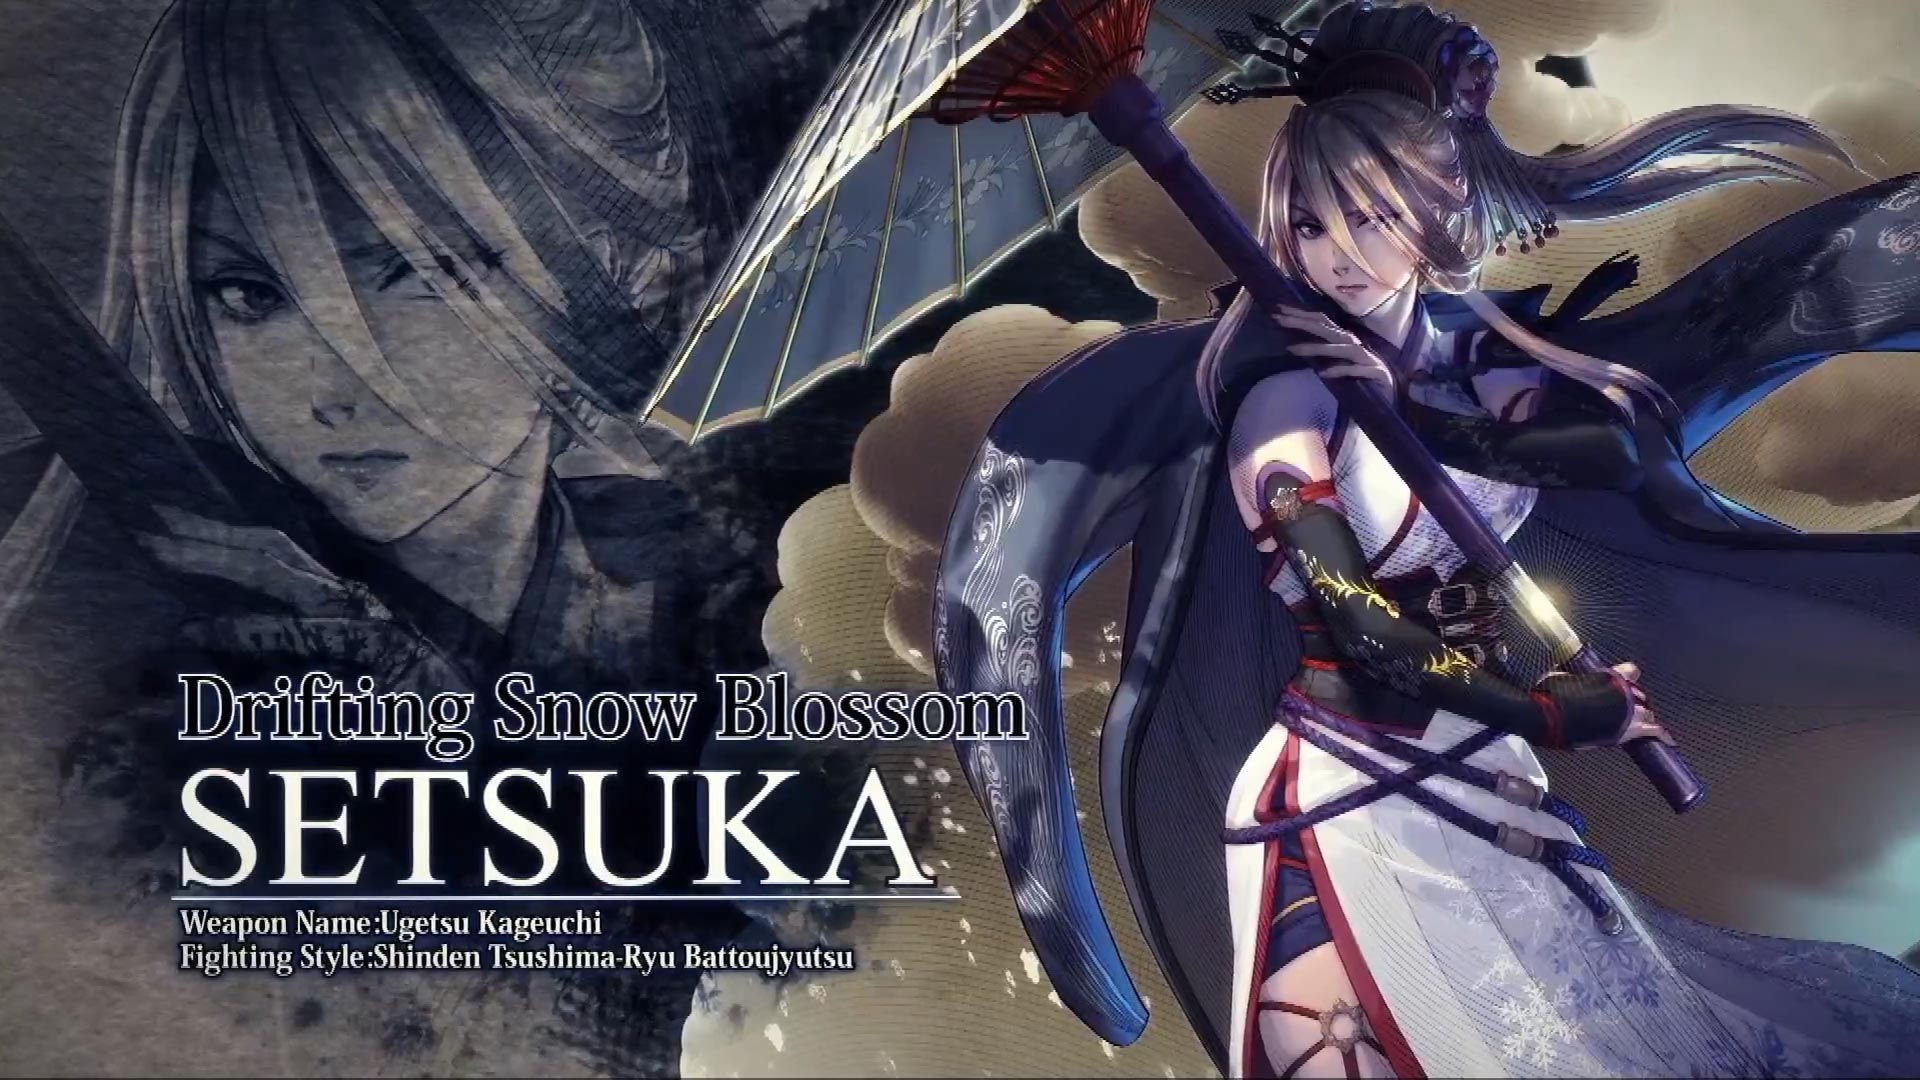 Soulcalibur Vi To Receive Setsuka Dlc And Free Update On Aug 4 Dot Esports